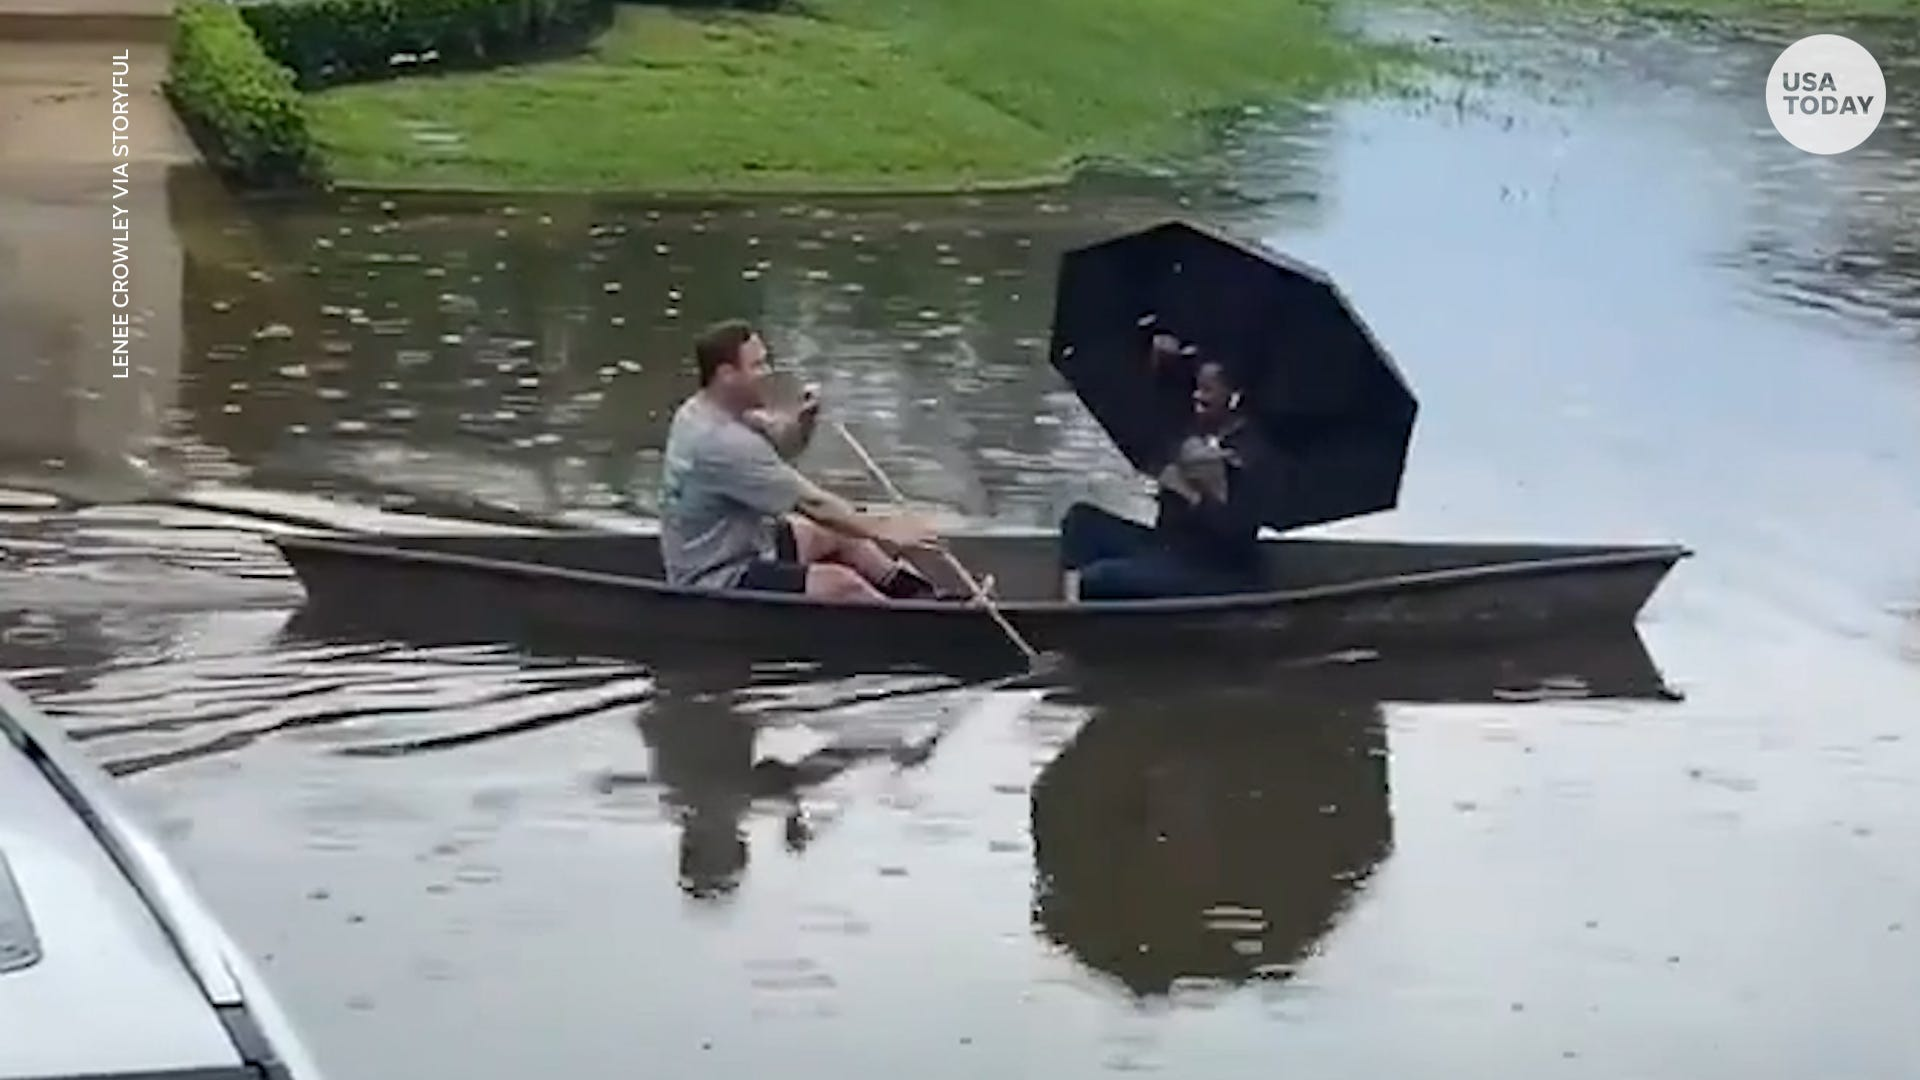 New Orleans man gives stranded neighbor much needed lift in canoe through flooded streets